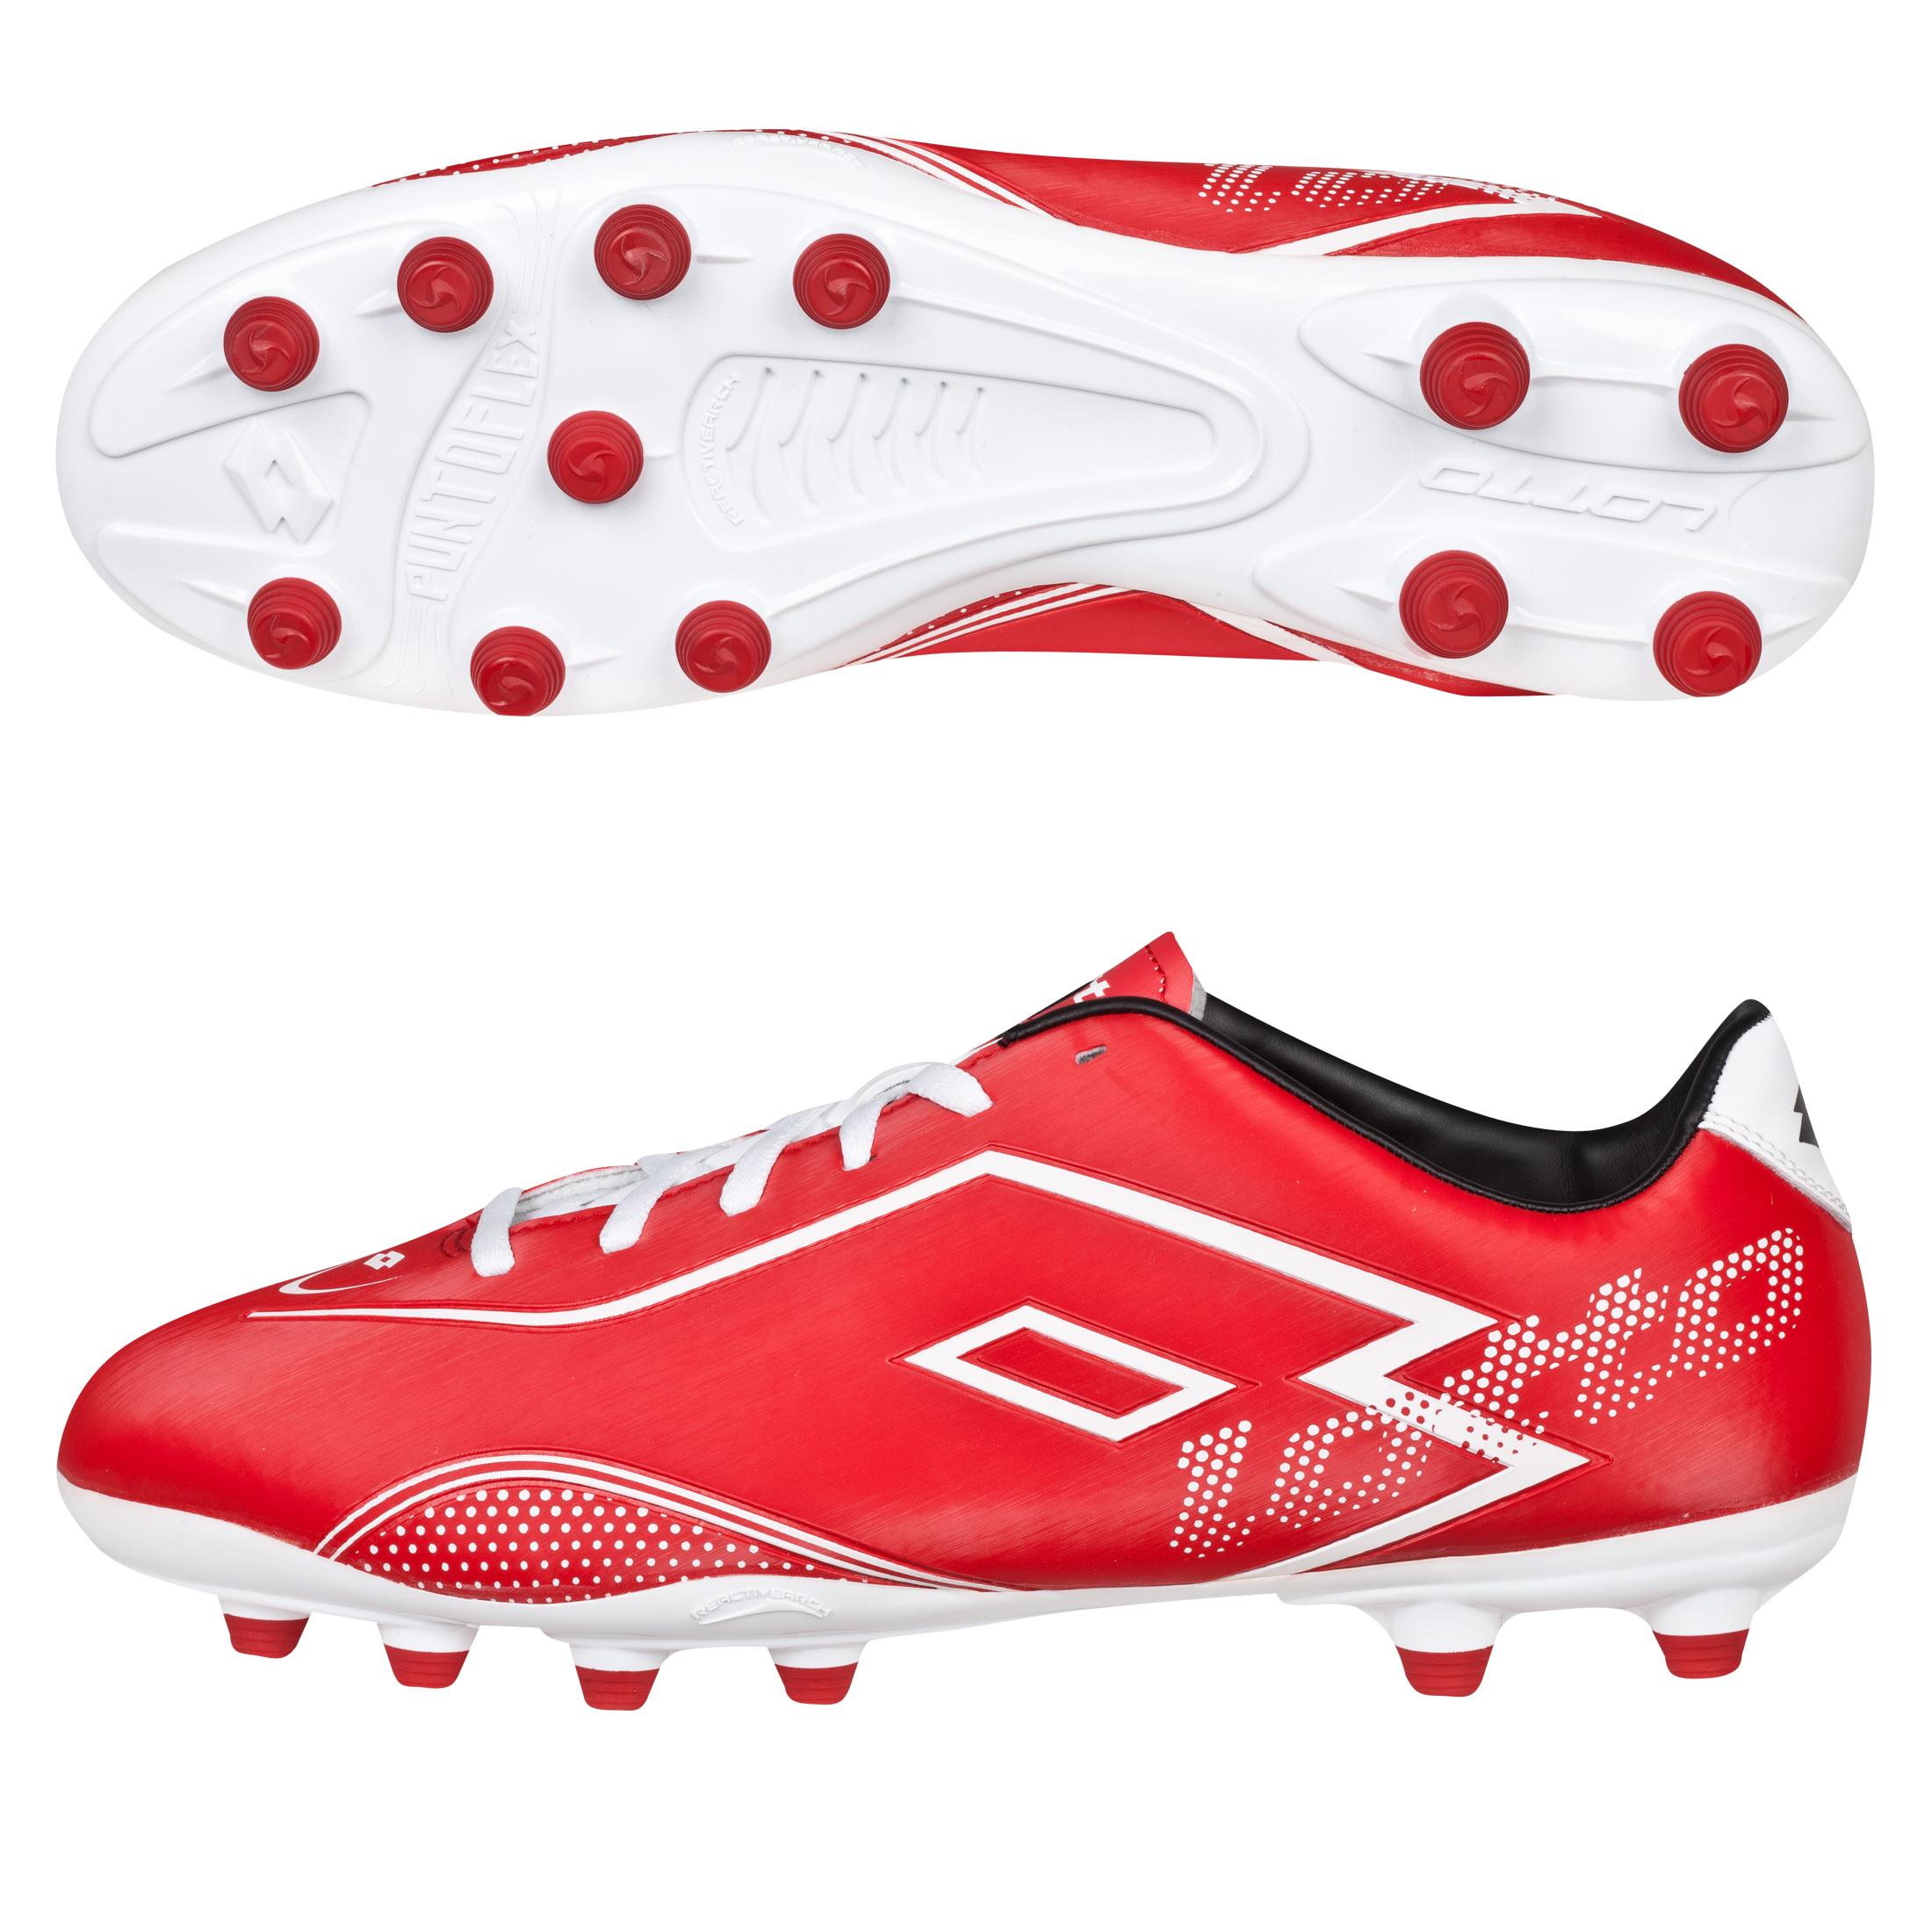 Lotto Zhero Gravity.II 700 Firm Ground Football Boots - Risk Red/White